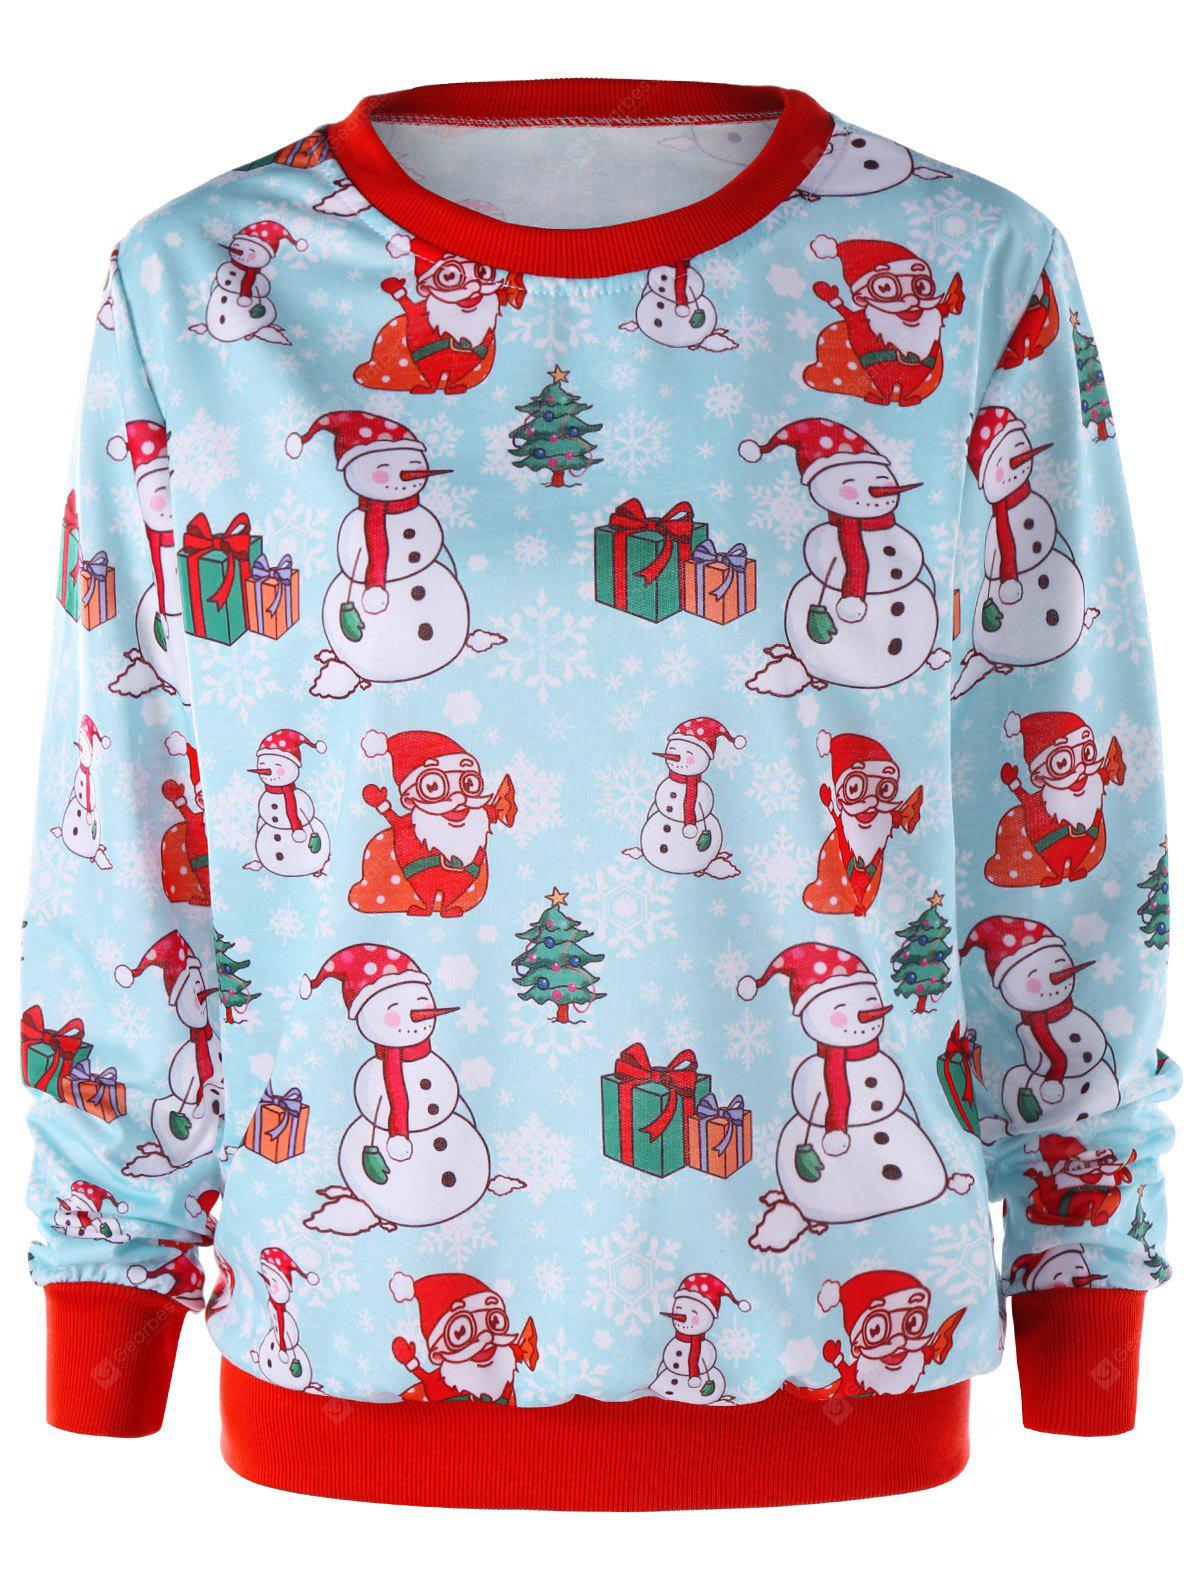 Christmas Snowman Crew Neck Sweatshirt